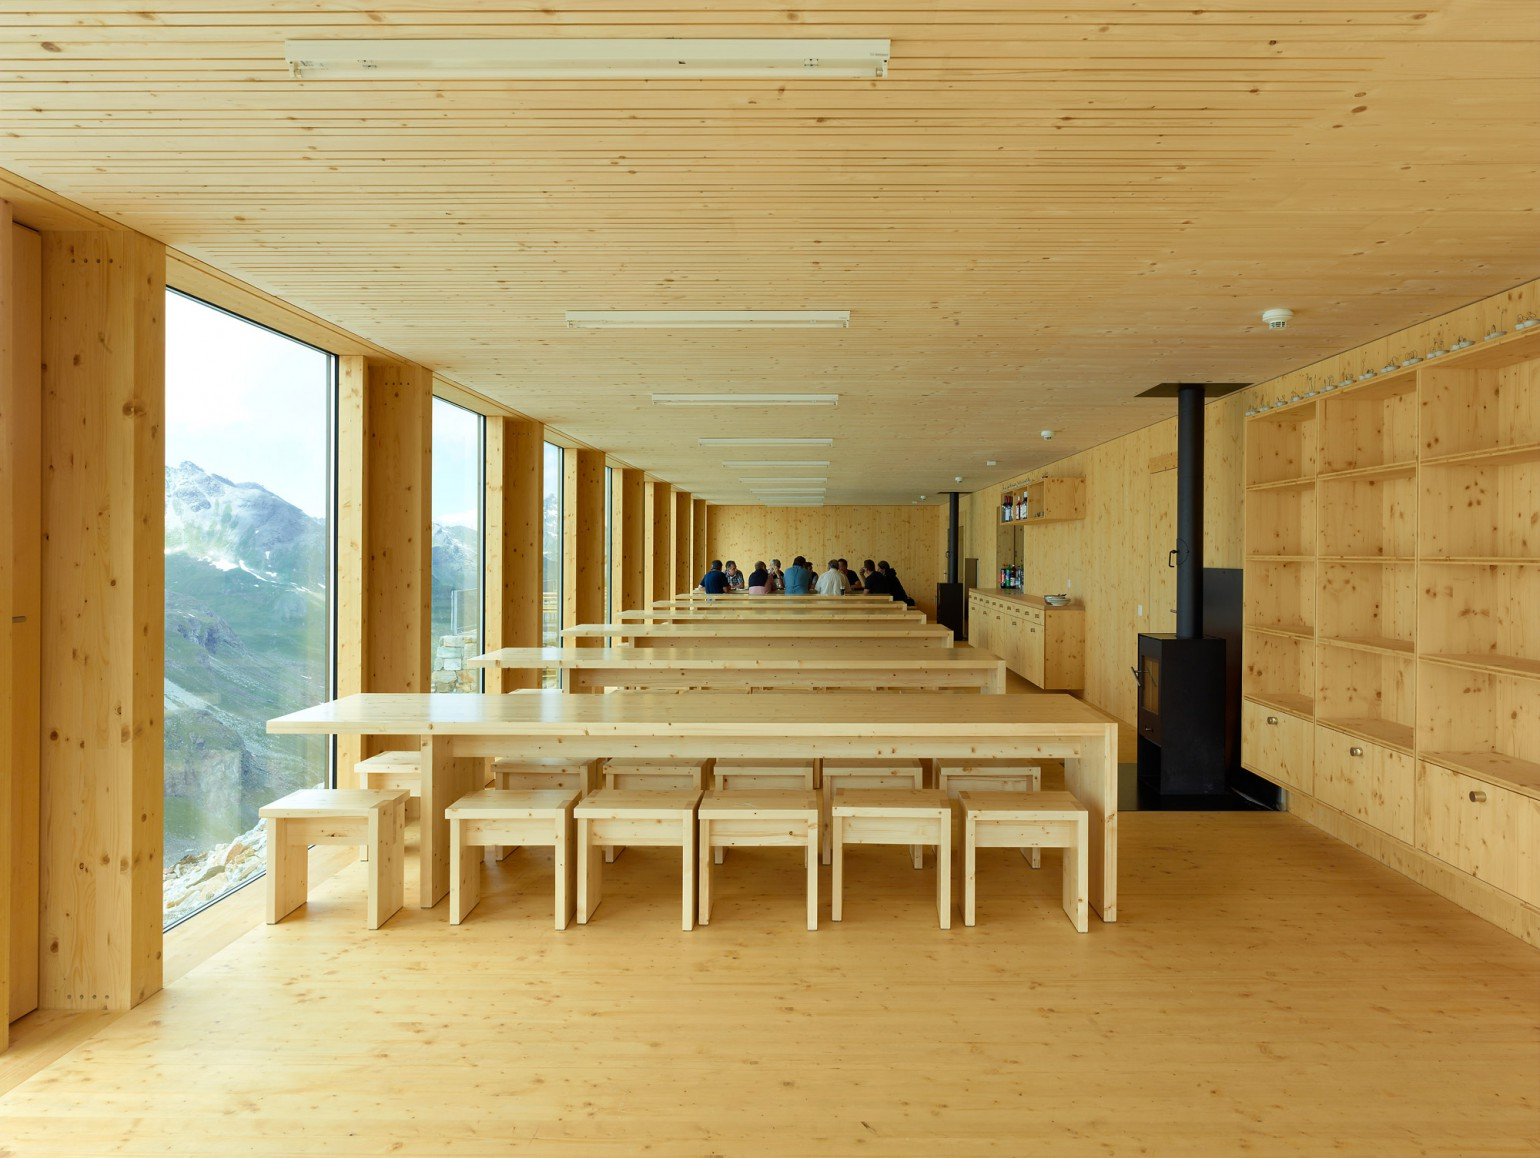 Cabane de moiry meyer architecture sion Meyer architecture